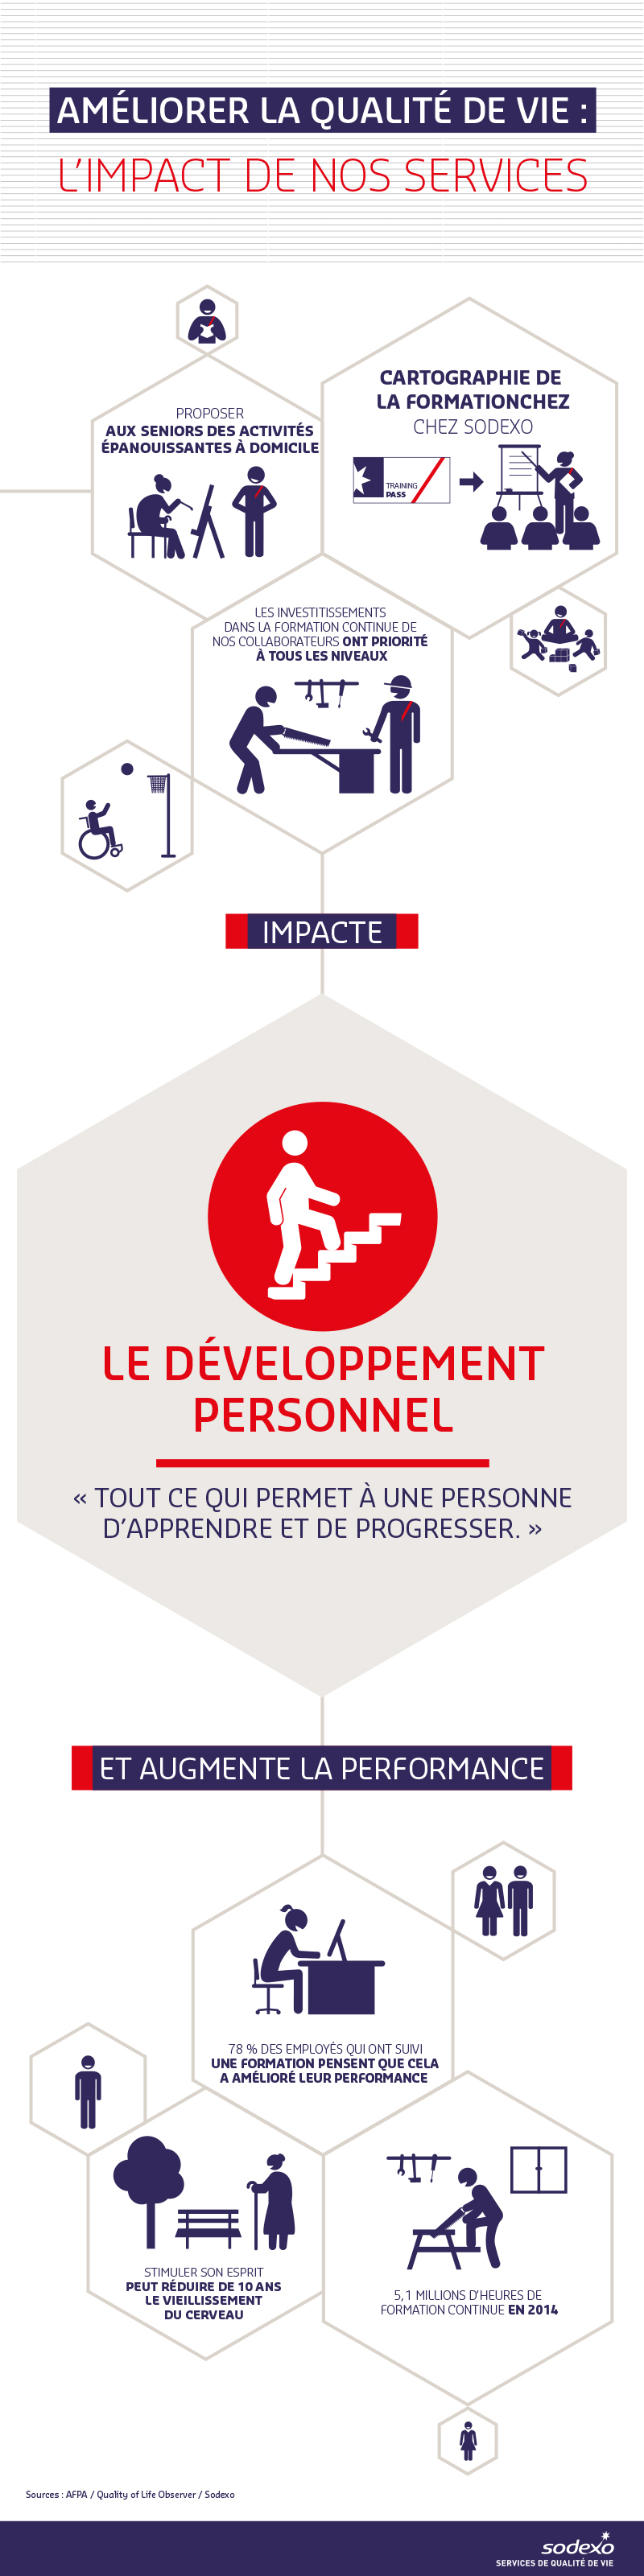 LE_DEVELOPMENT_PERSONNEL.jpg (Personal_growth_FR)